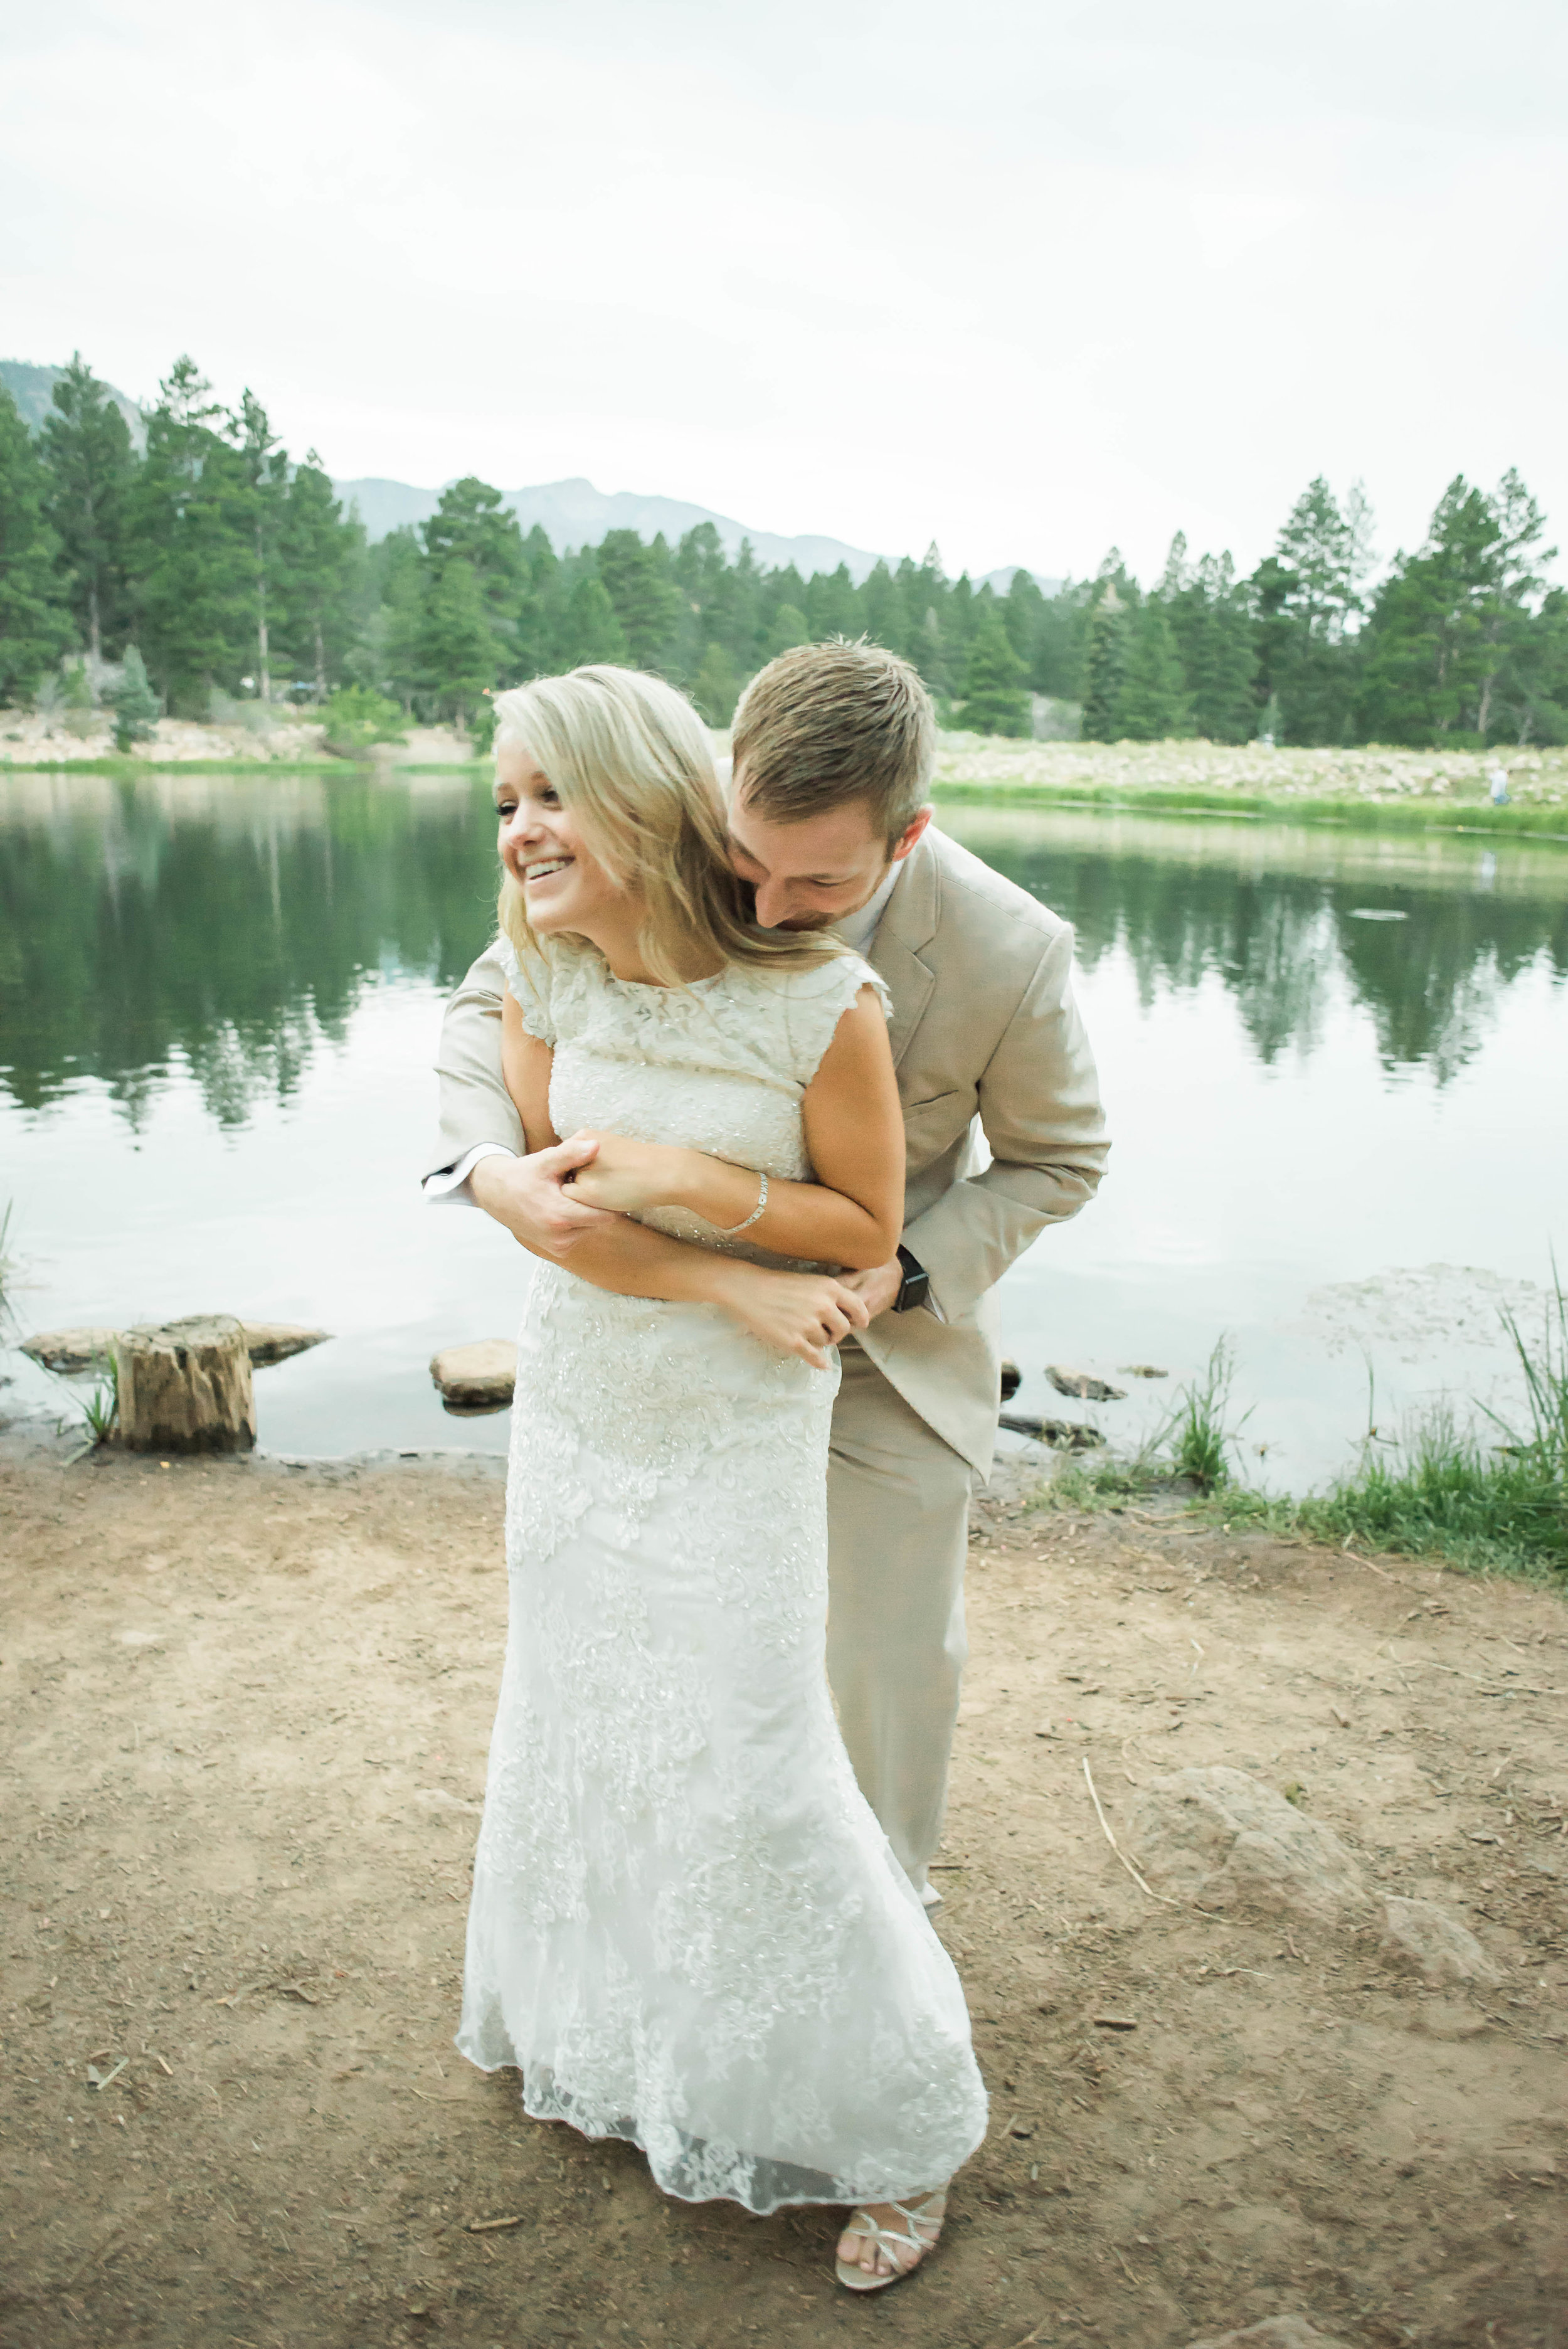 DANIEL+LACI-Sadie_Banks_Photography-120.jpg